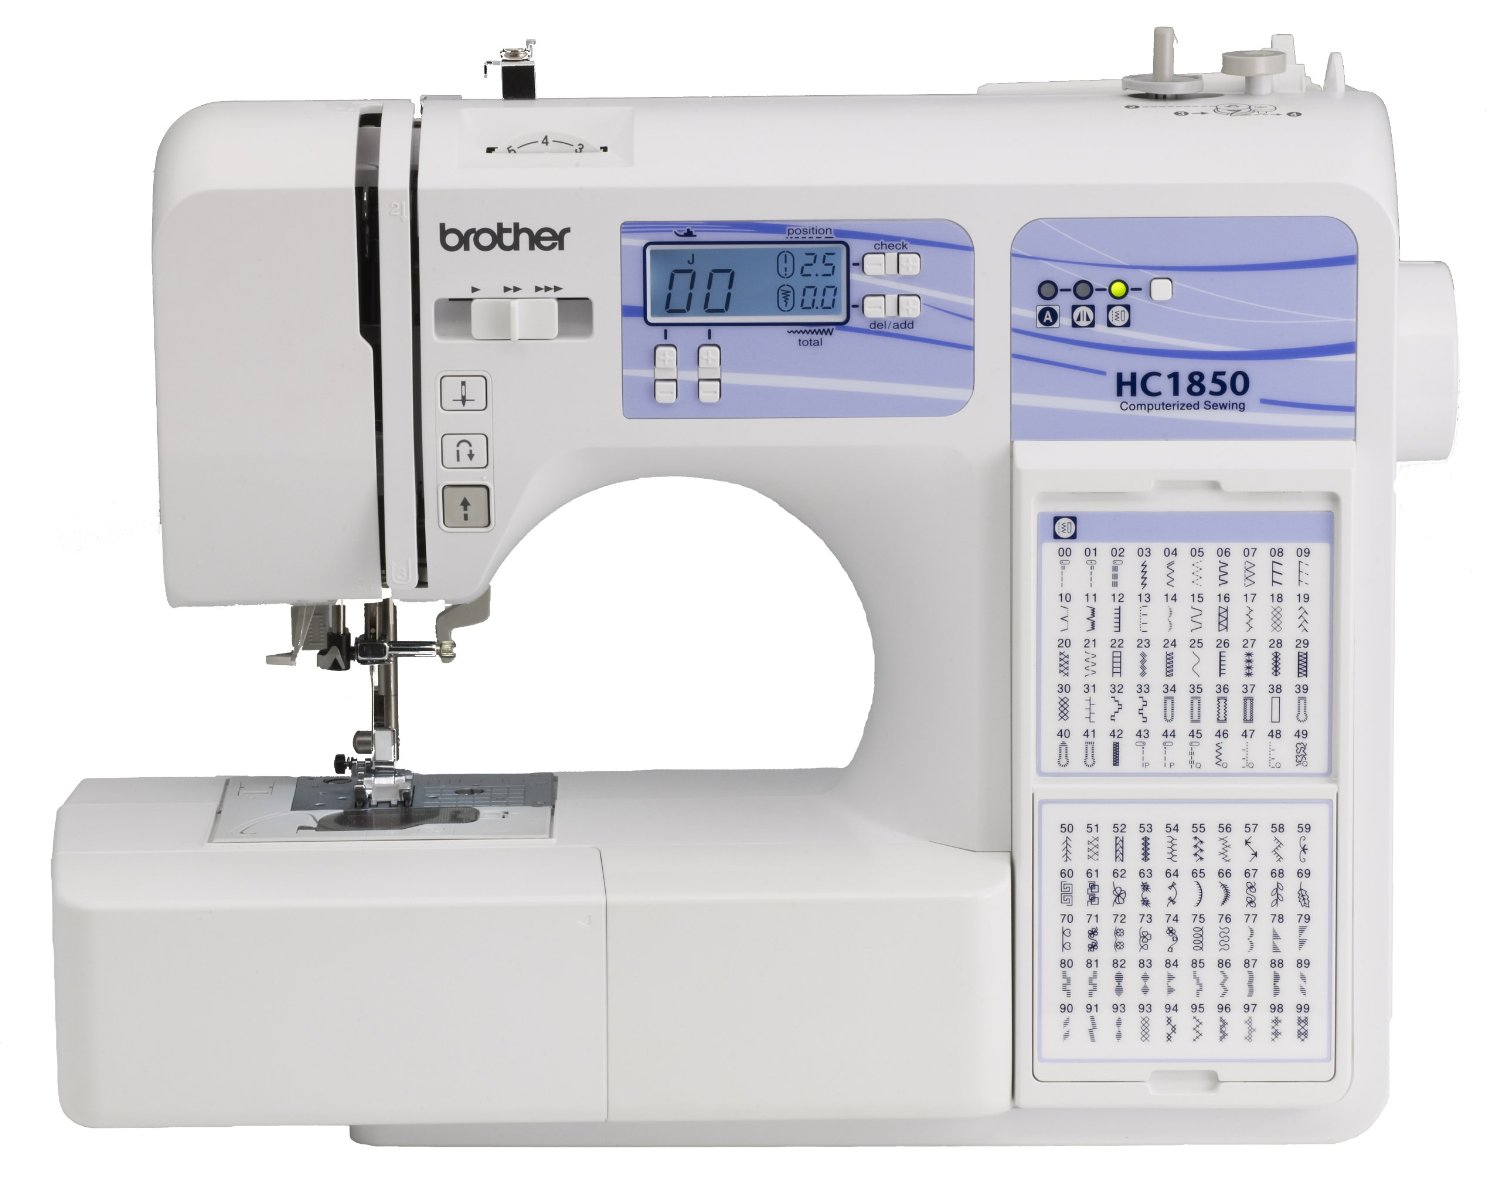 The Best Sewing Machine For Quilting : best machine for quilting - Adamdwight.com